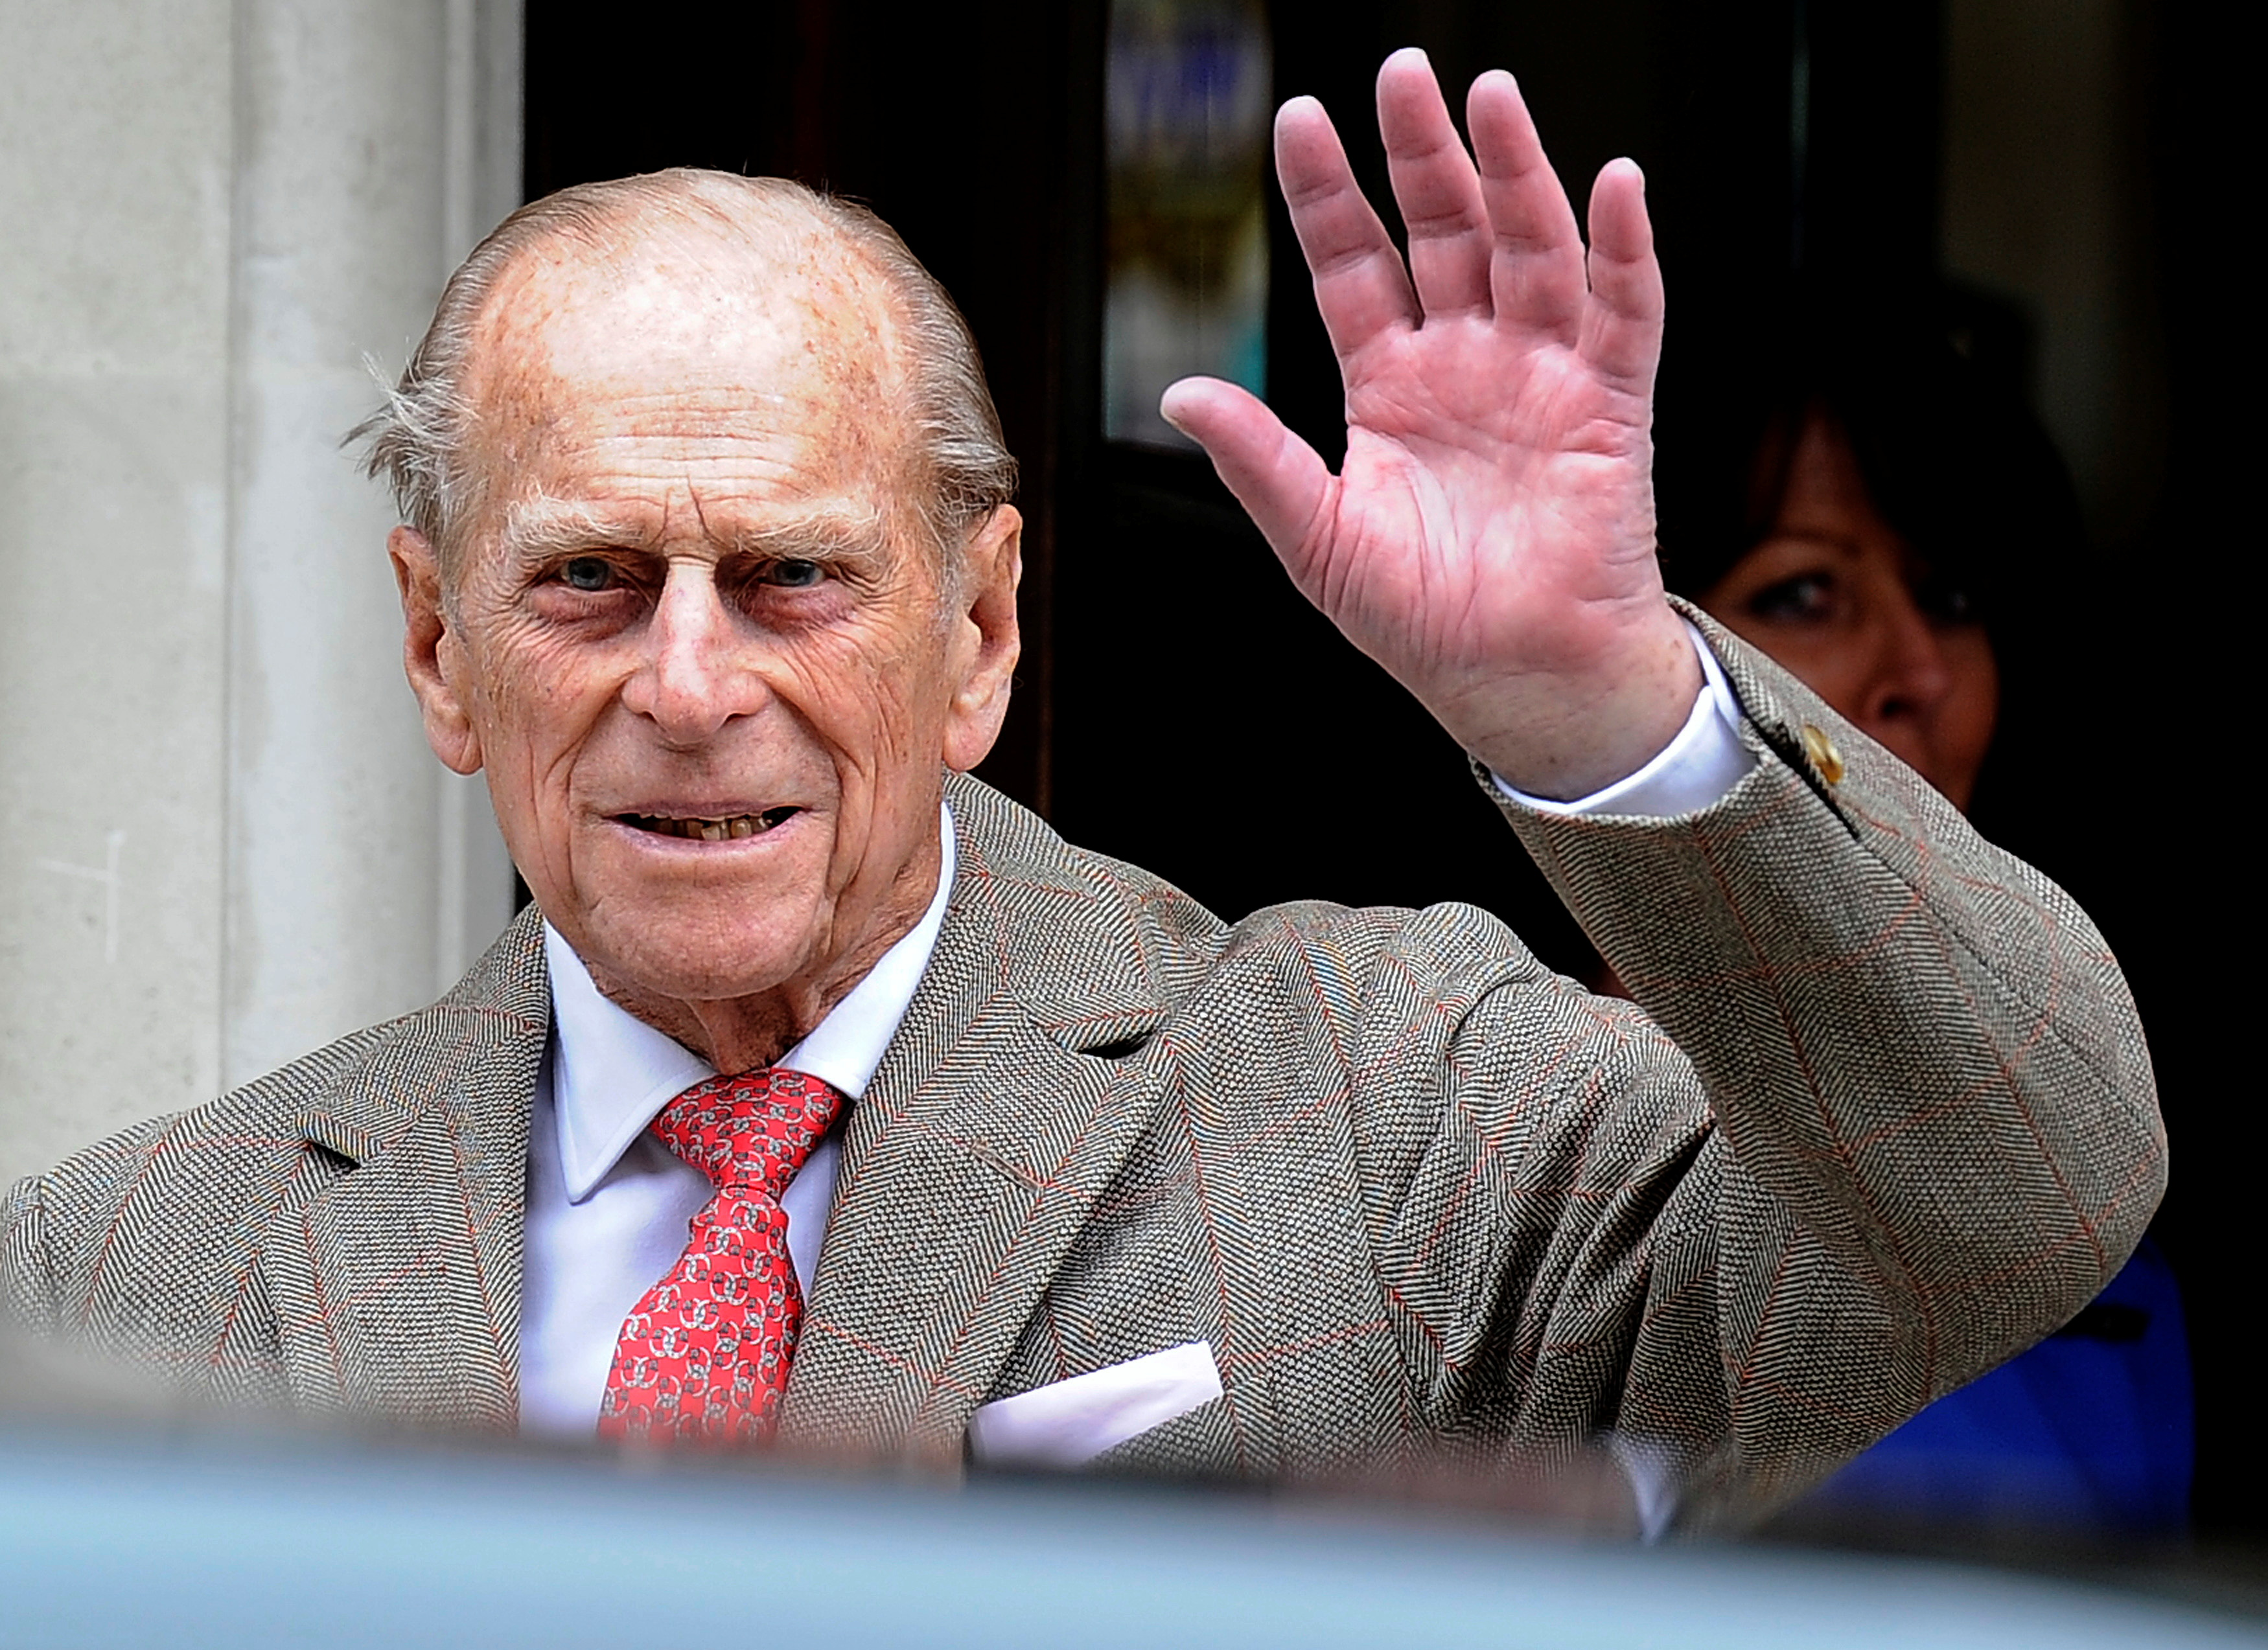 Britain's Prince Philip waves to members of the media as he leaves the King Edward VII Hospital in London June 9, 2012. REUTERS/Paul Hackett/File Photo